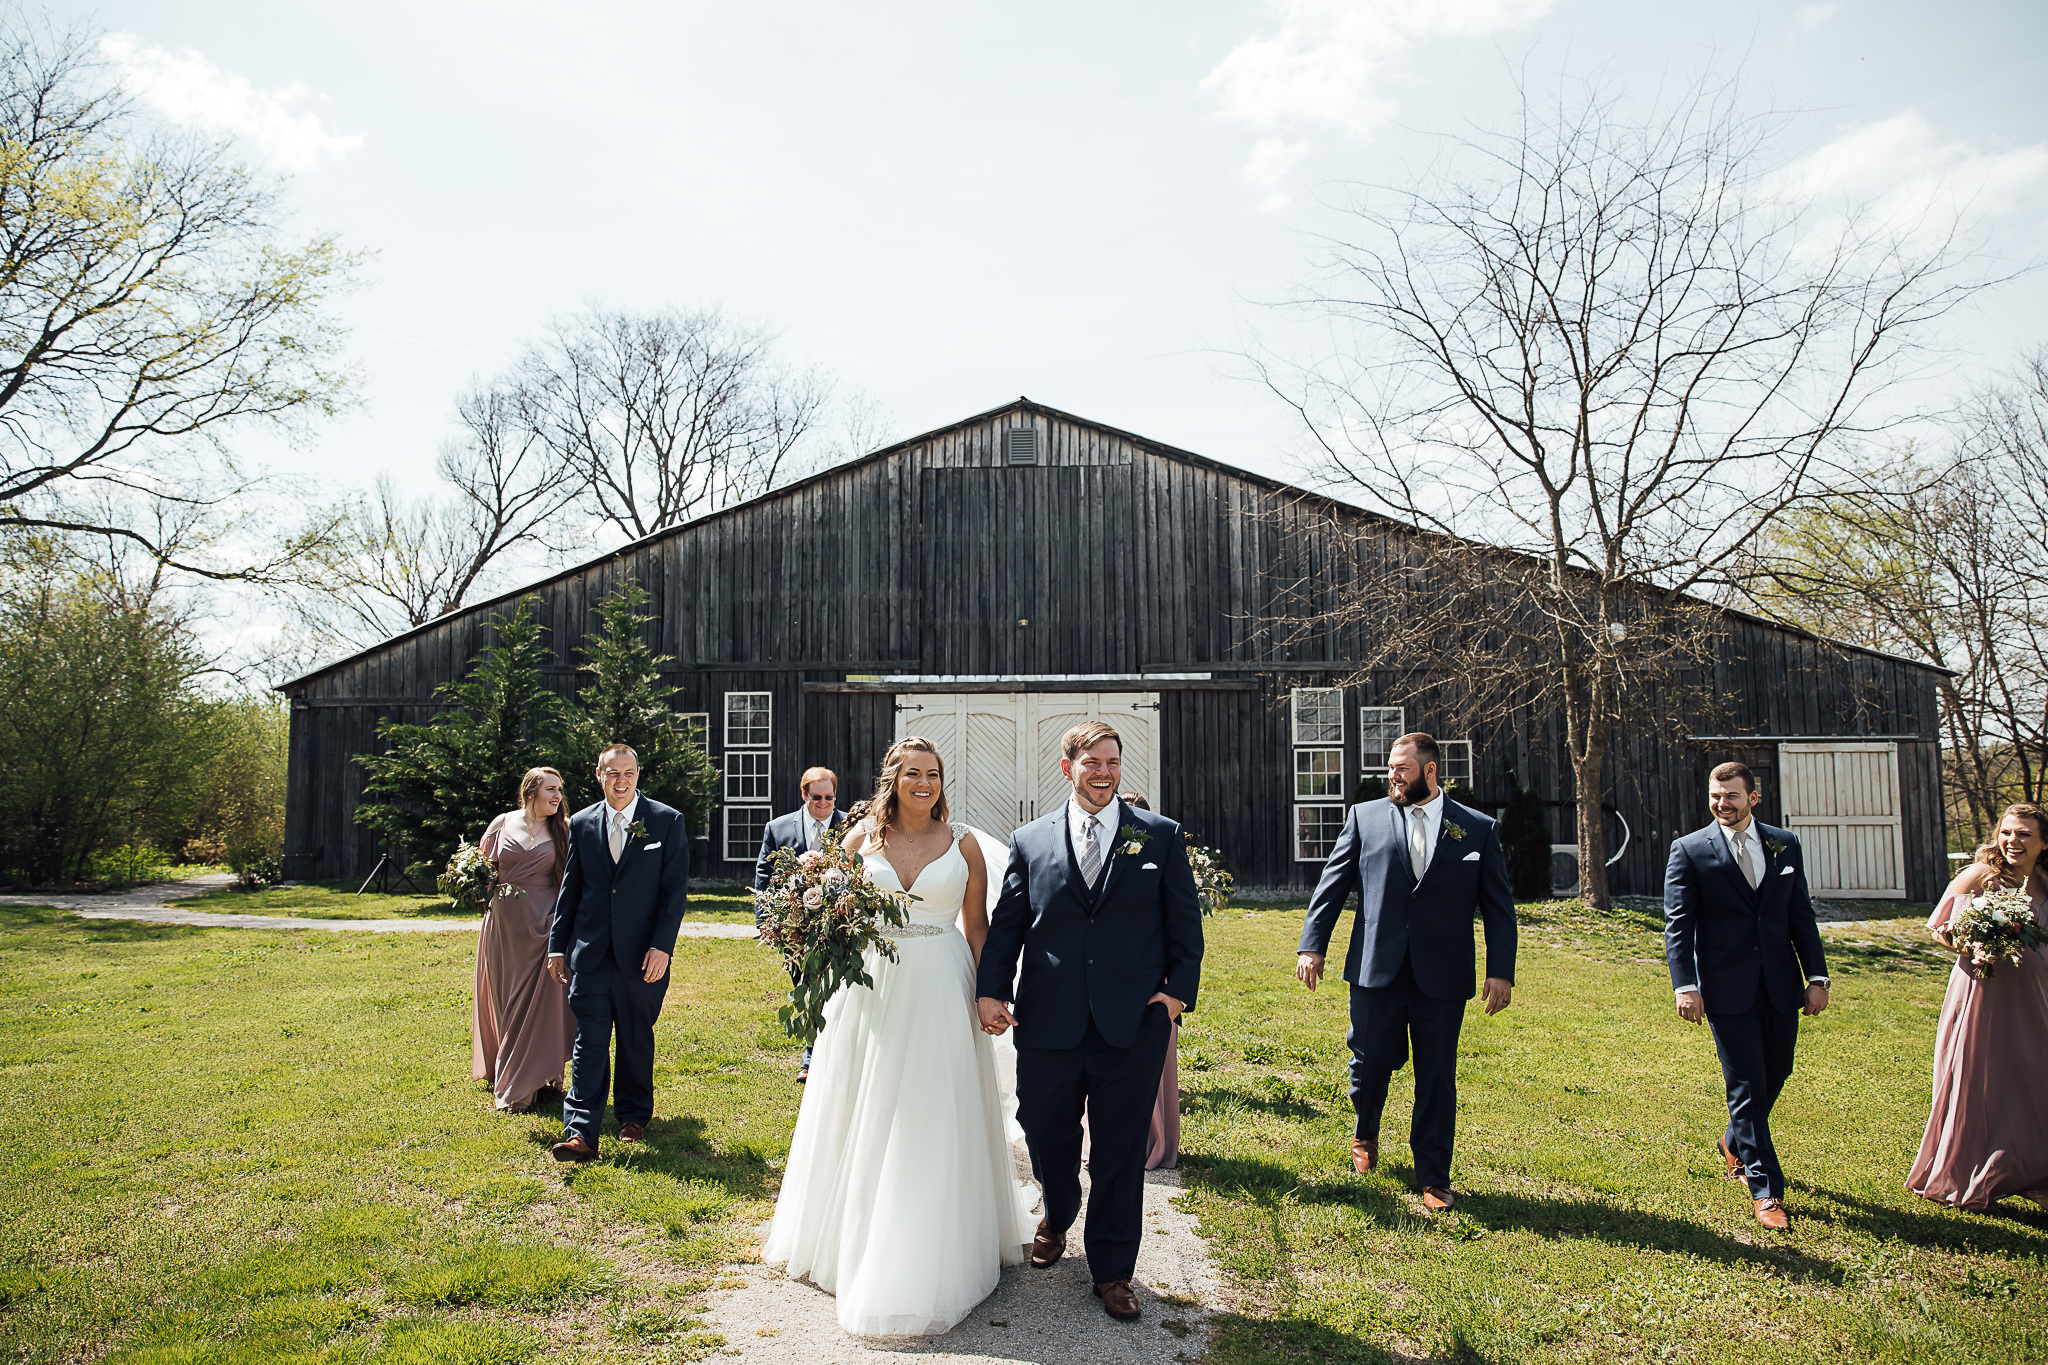 meadow-hills-farm-thewarmtharoundyou-memphis-wedding-photographers (98 of 266).jpg